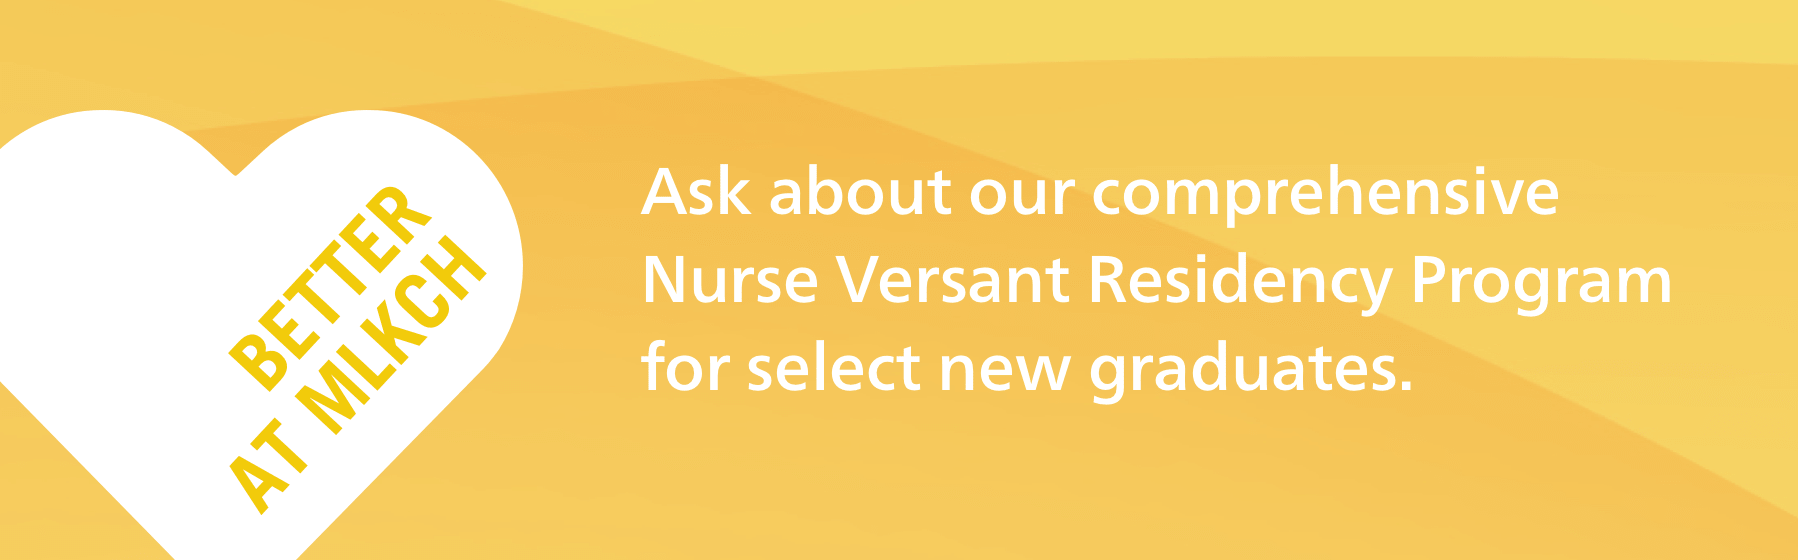 Yellow badge that reads Better at MLKCH. Ask about our comprehensive Nurse Versant Residency Program for select new graduates.